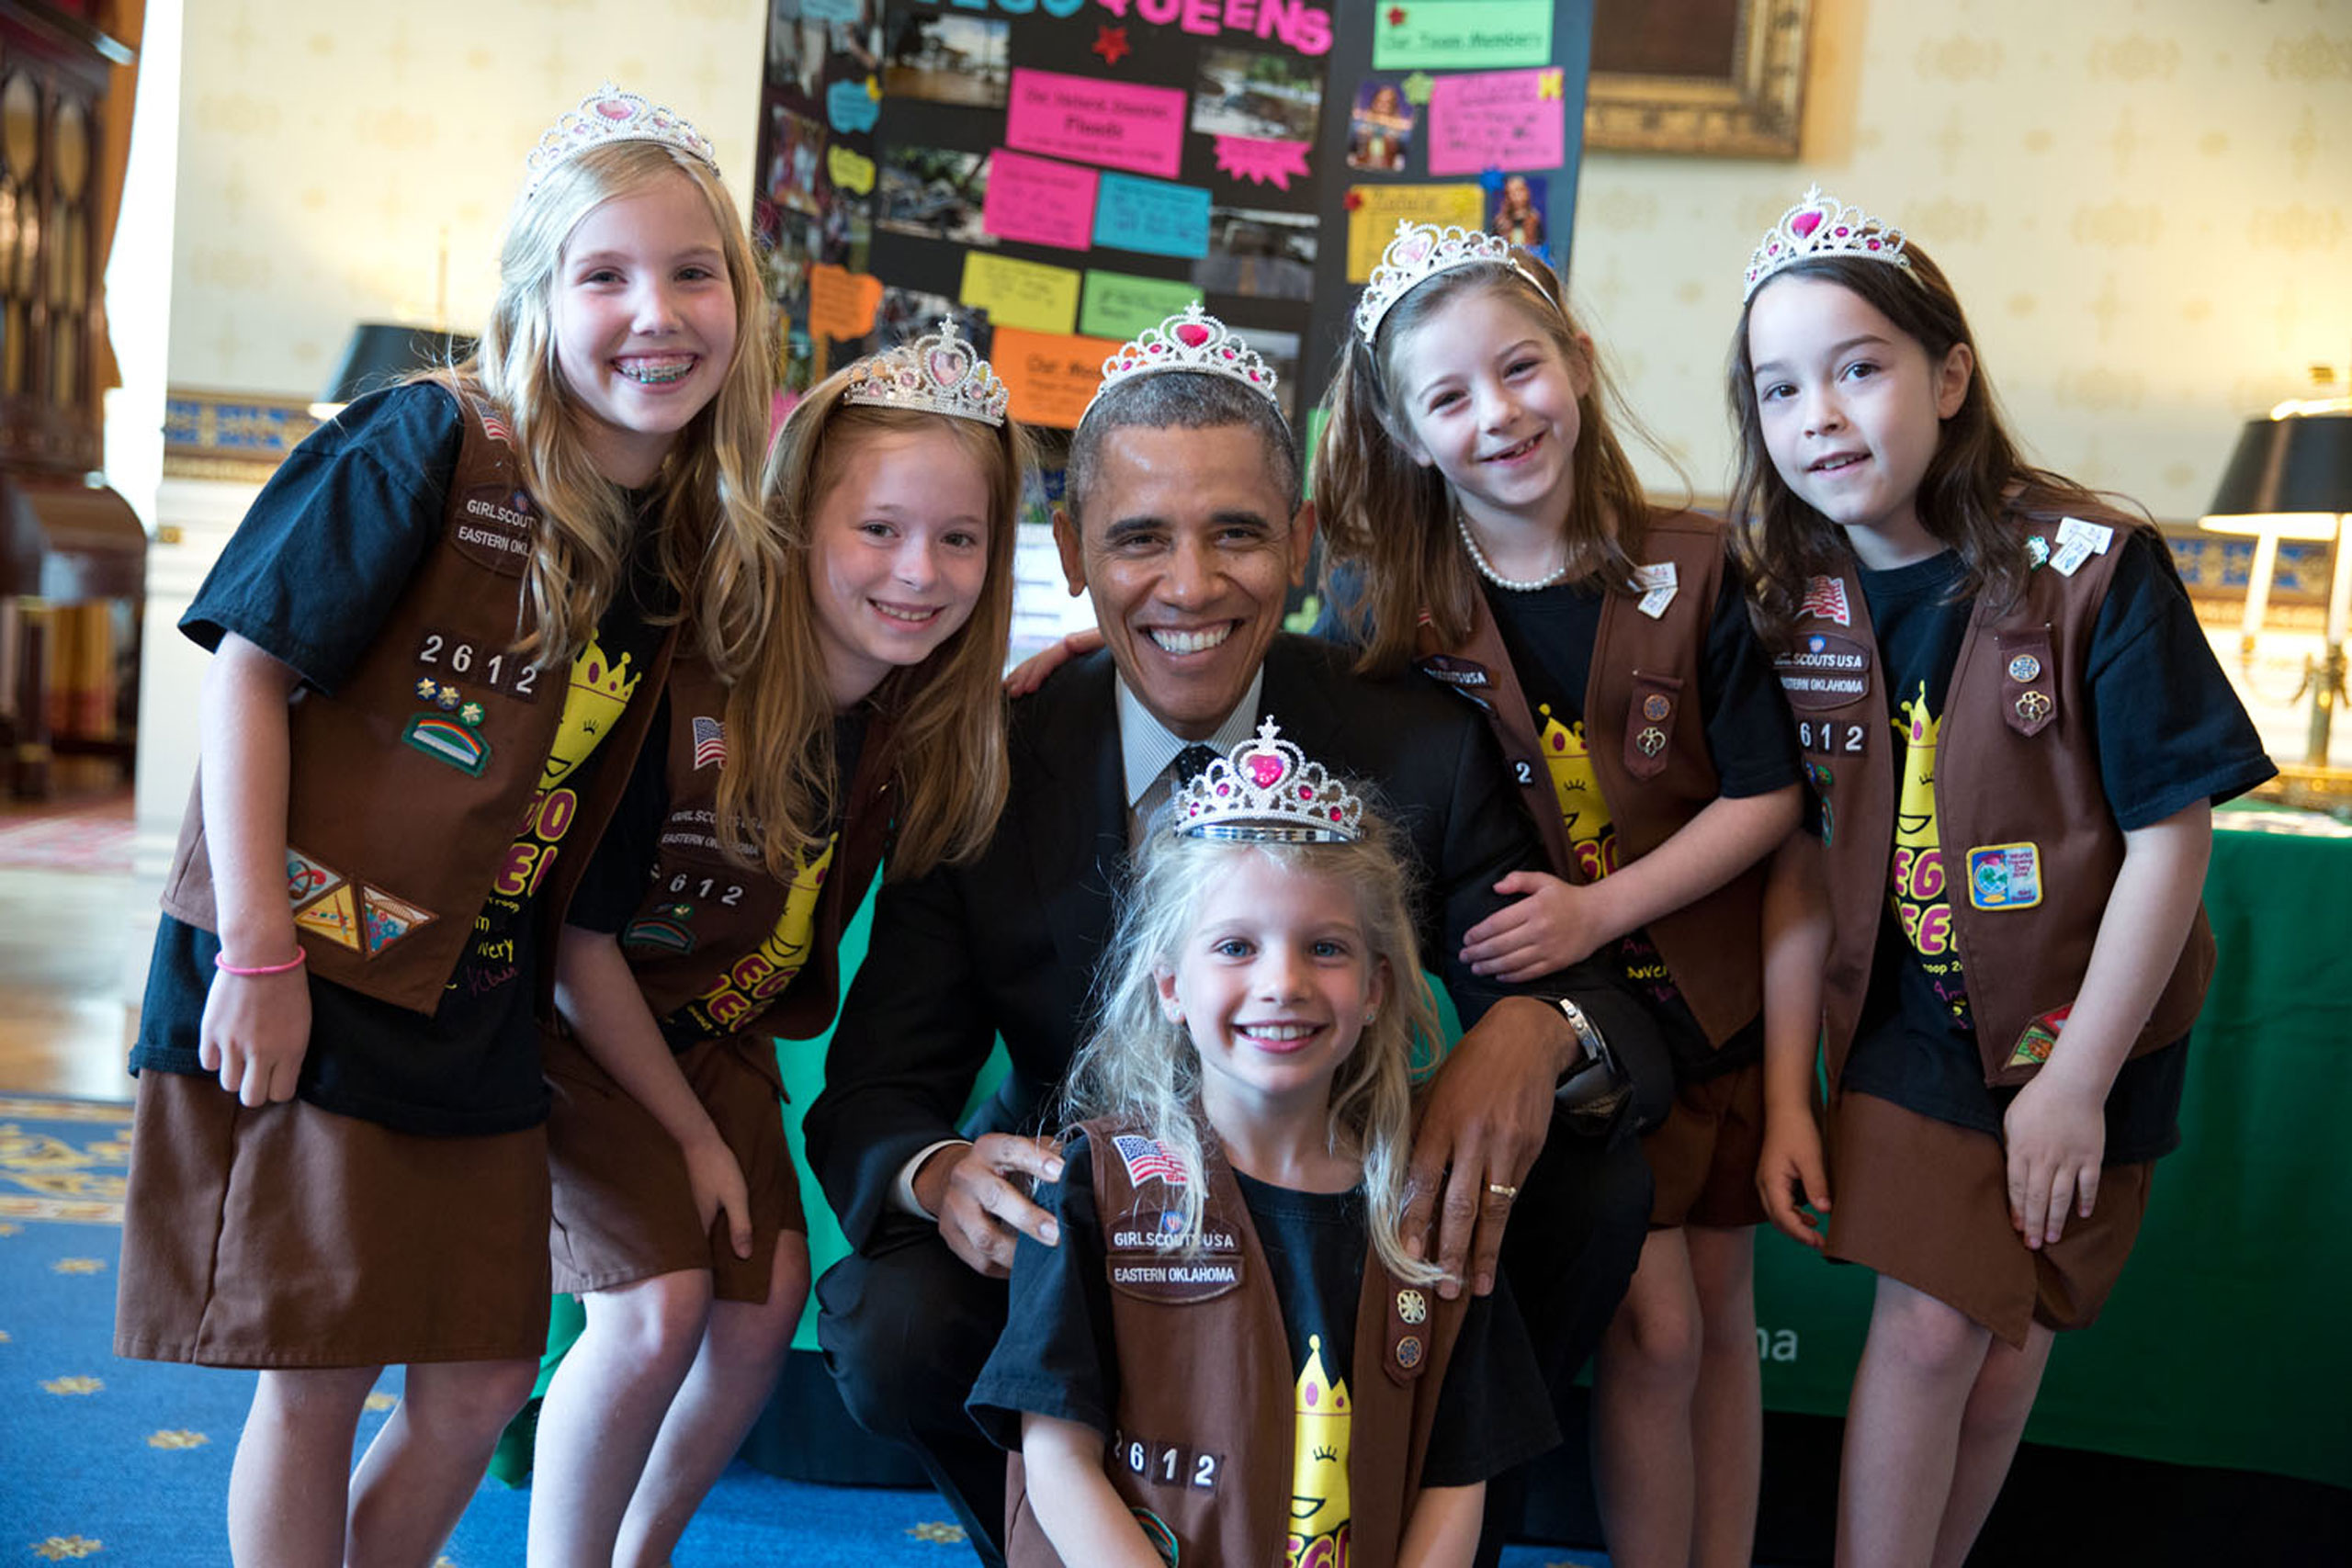 This photograph was from the annual White House Science Fair. It shows the President posing with Girl Scout Troop 2612 from Tulsa, Oklahoma. I think the 8-year-old girls — Avery Dodson, Natalie Hurley, Miriam Schaffer, Claibyre Winton and Lucy Claire Sharp — are called 'Brownies.' They had just shown the President their exhibit: a Lego flood-proof bridge project. The fair celebrated the student winners of a broad range of science, technology, engineering, and math (STEM) competitions from across the country,  May 24, 2014.